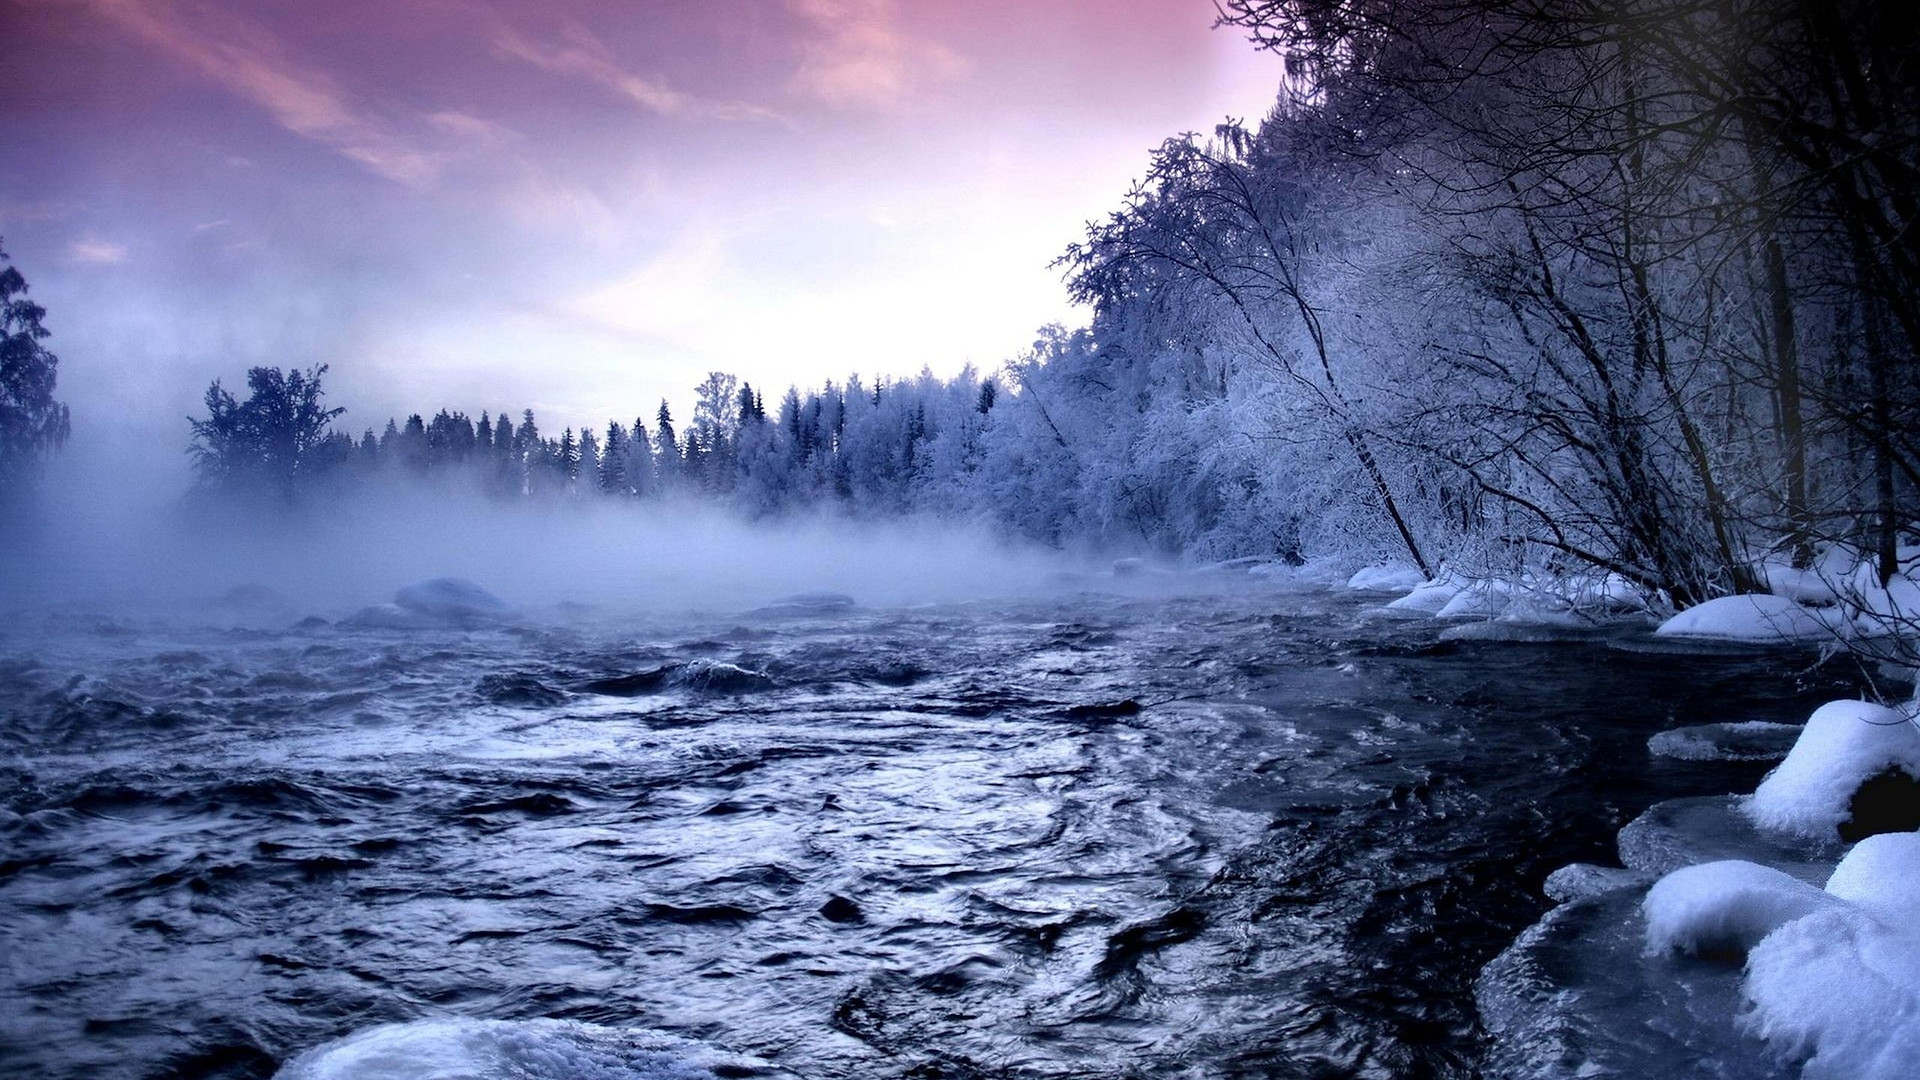 ws_Winter_Trees_Fog_River_&_Snow_2560x14